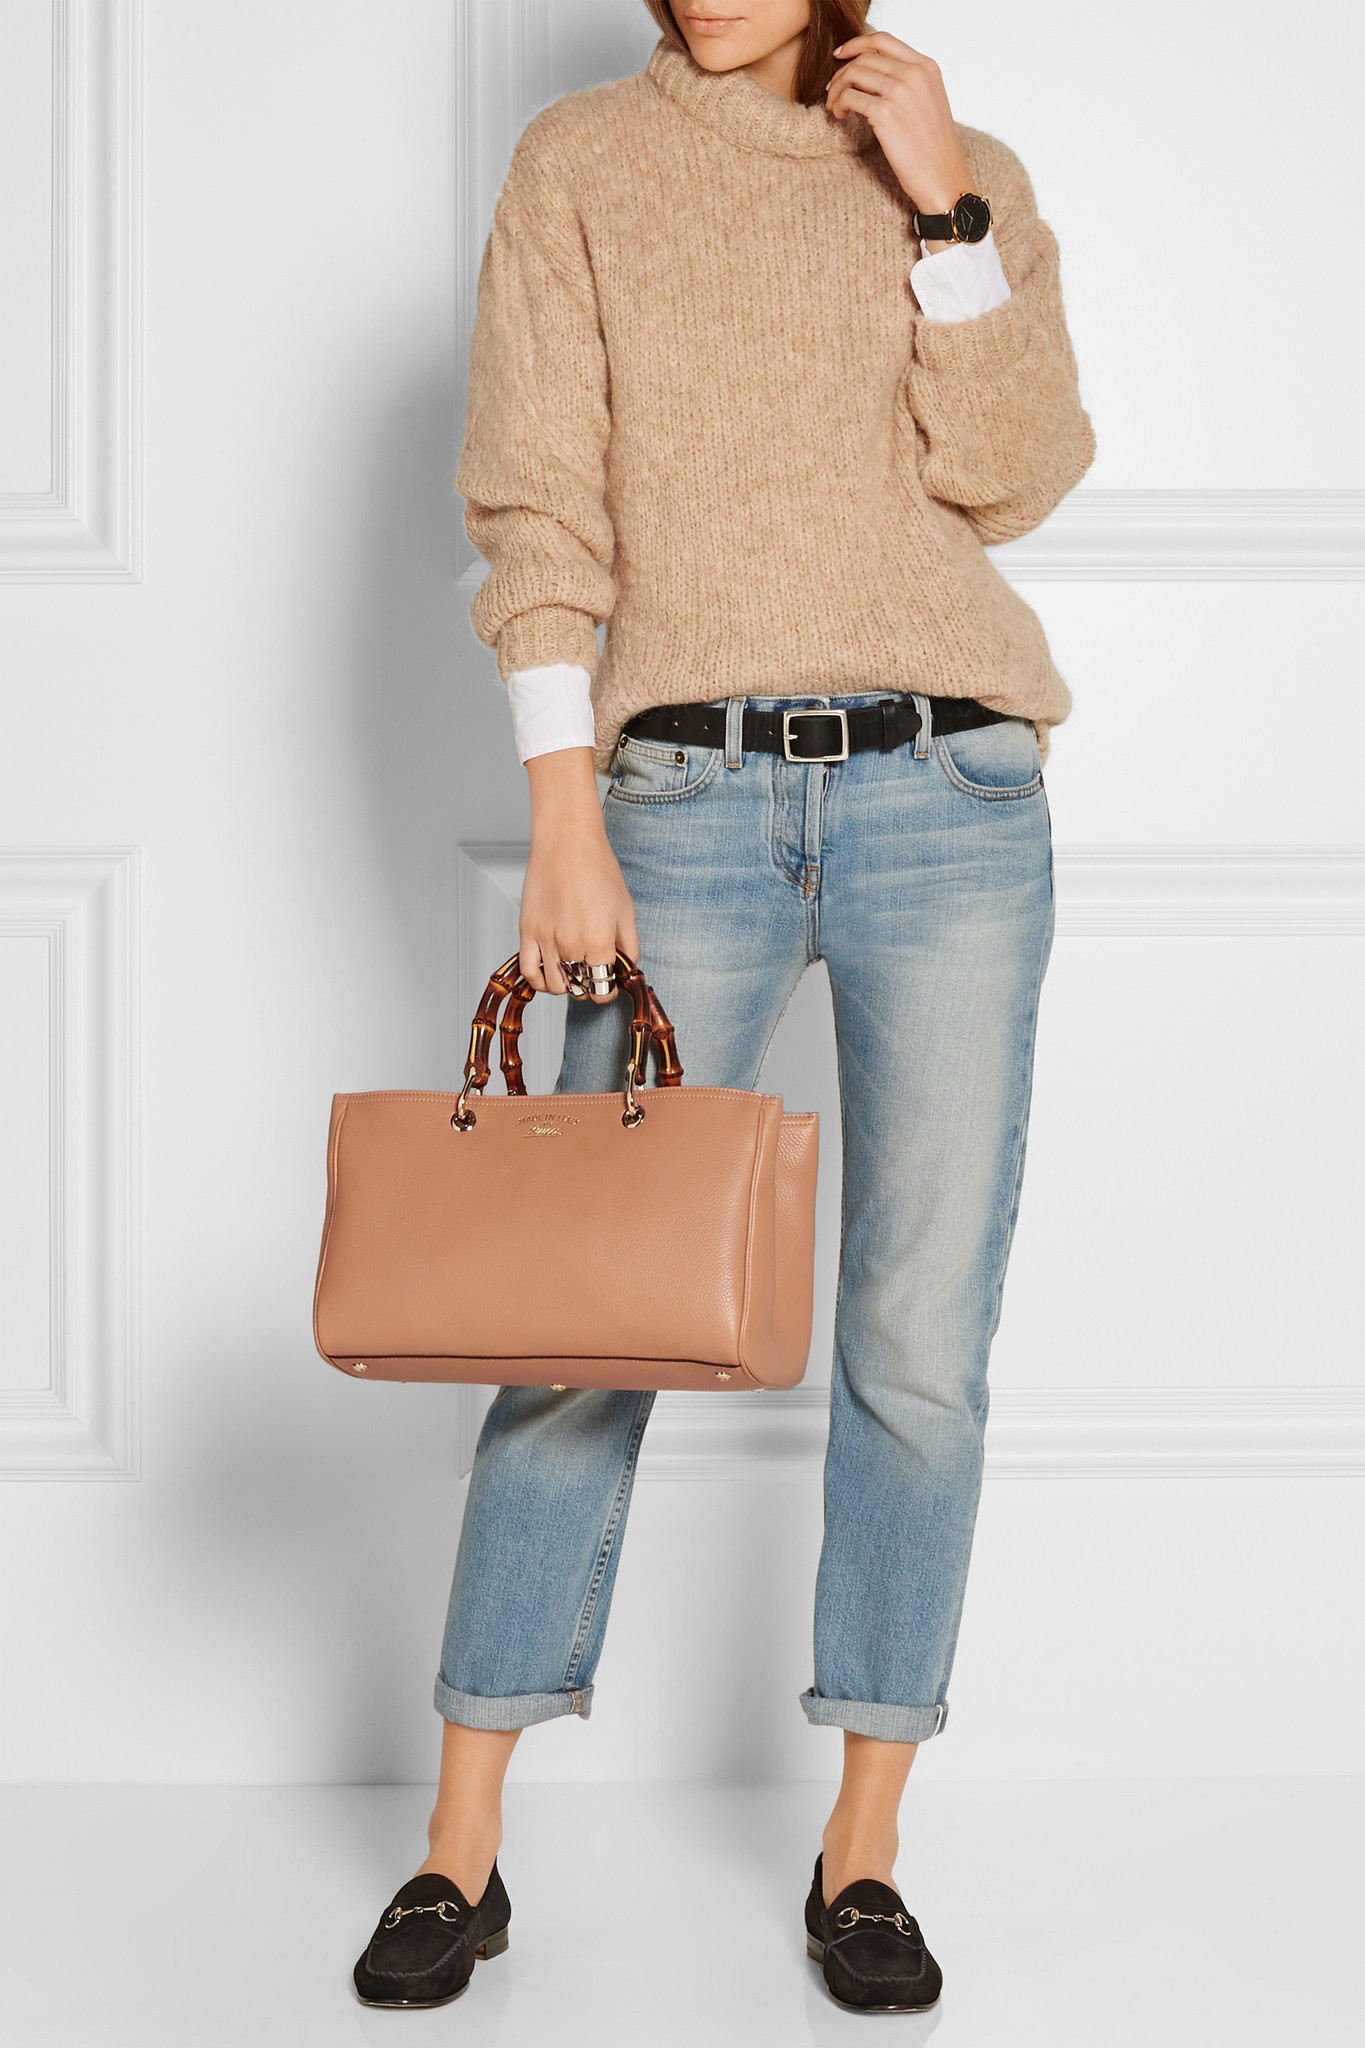 d0191dcbf91 Gucci Bamboo Shopper Medium Textured-leather Tote in Natural - Lyst